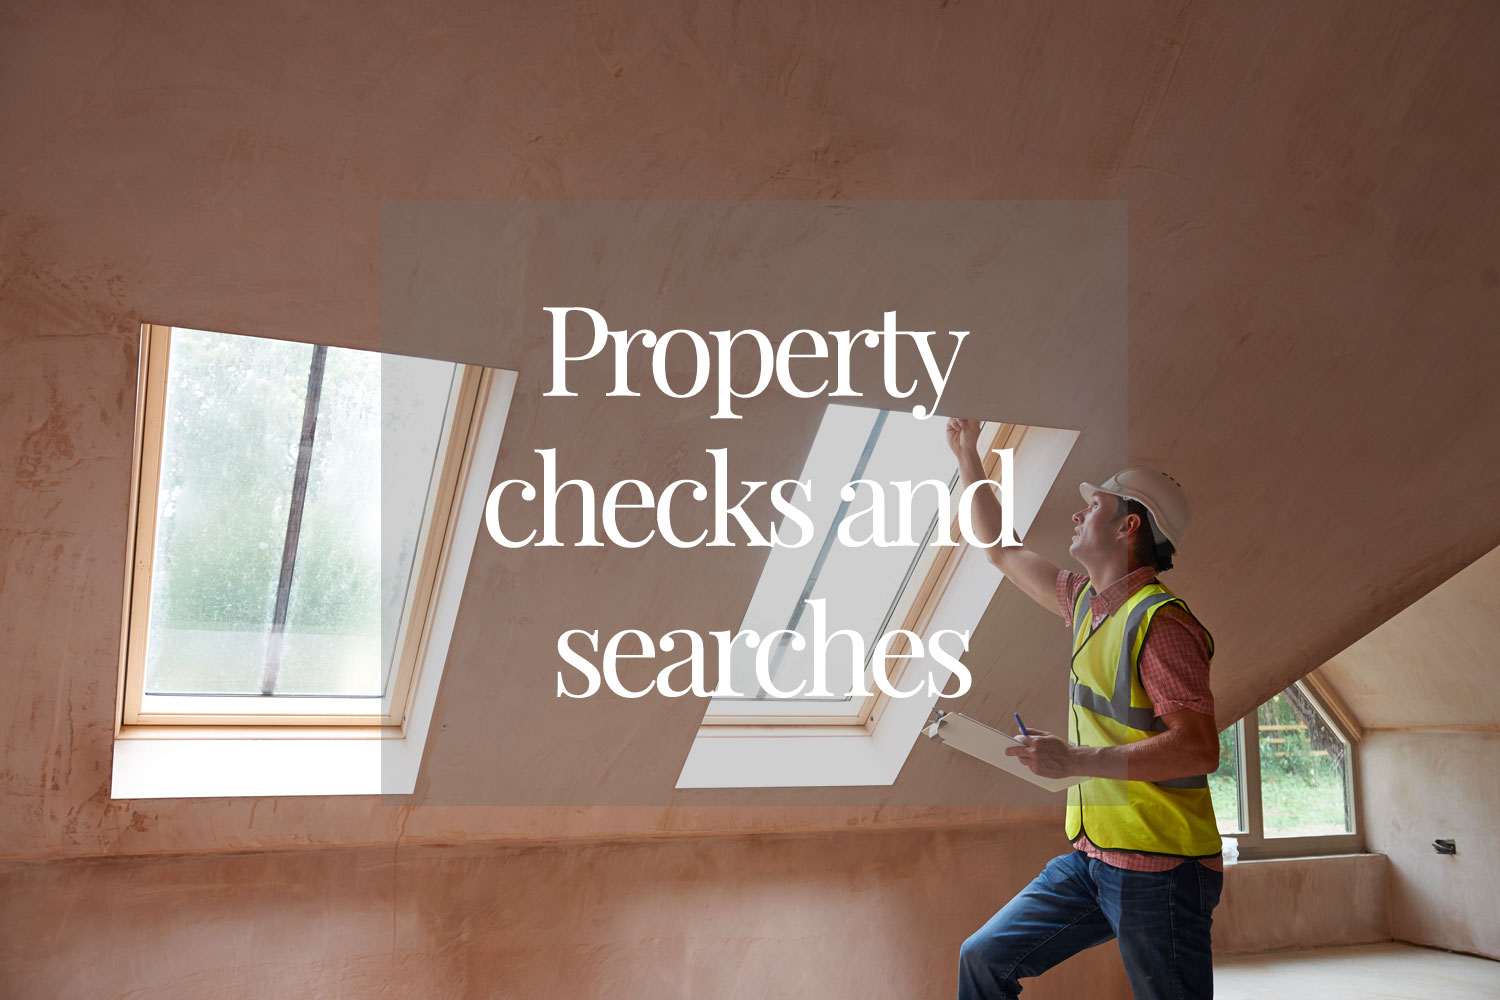 Property checks and searches